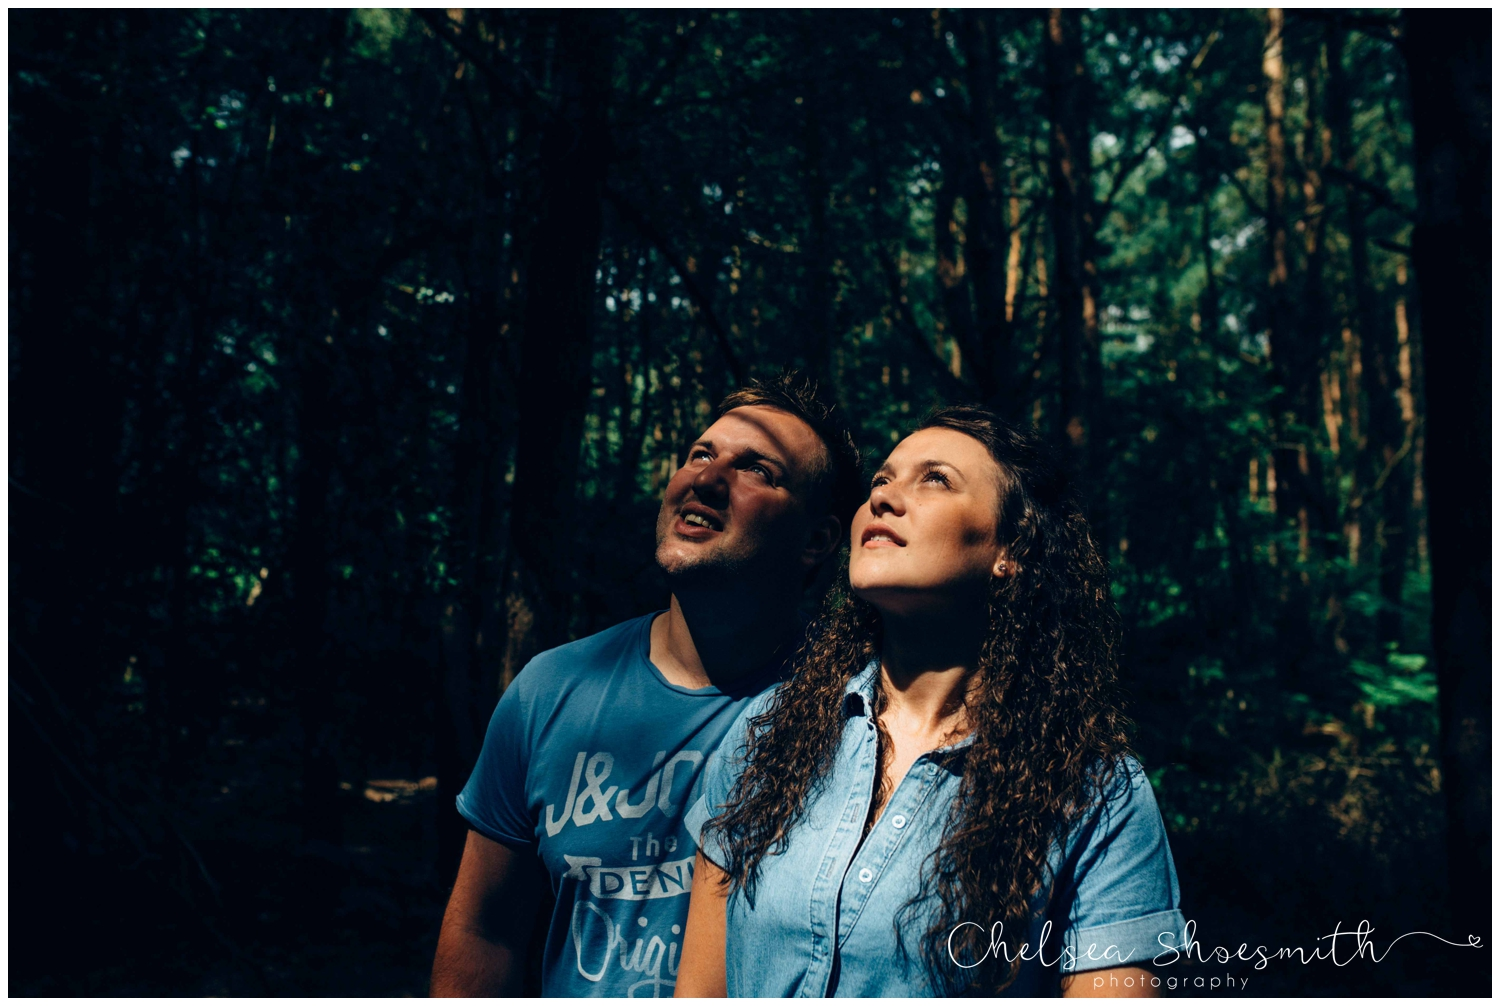 (56 of 75) Bethan & Peter Engagement Shoot Cheshire, Delamere Forest Chelsea Shoesmith Photography